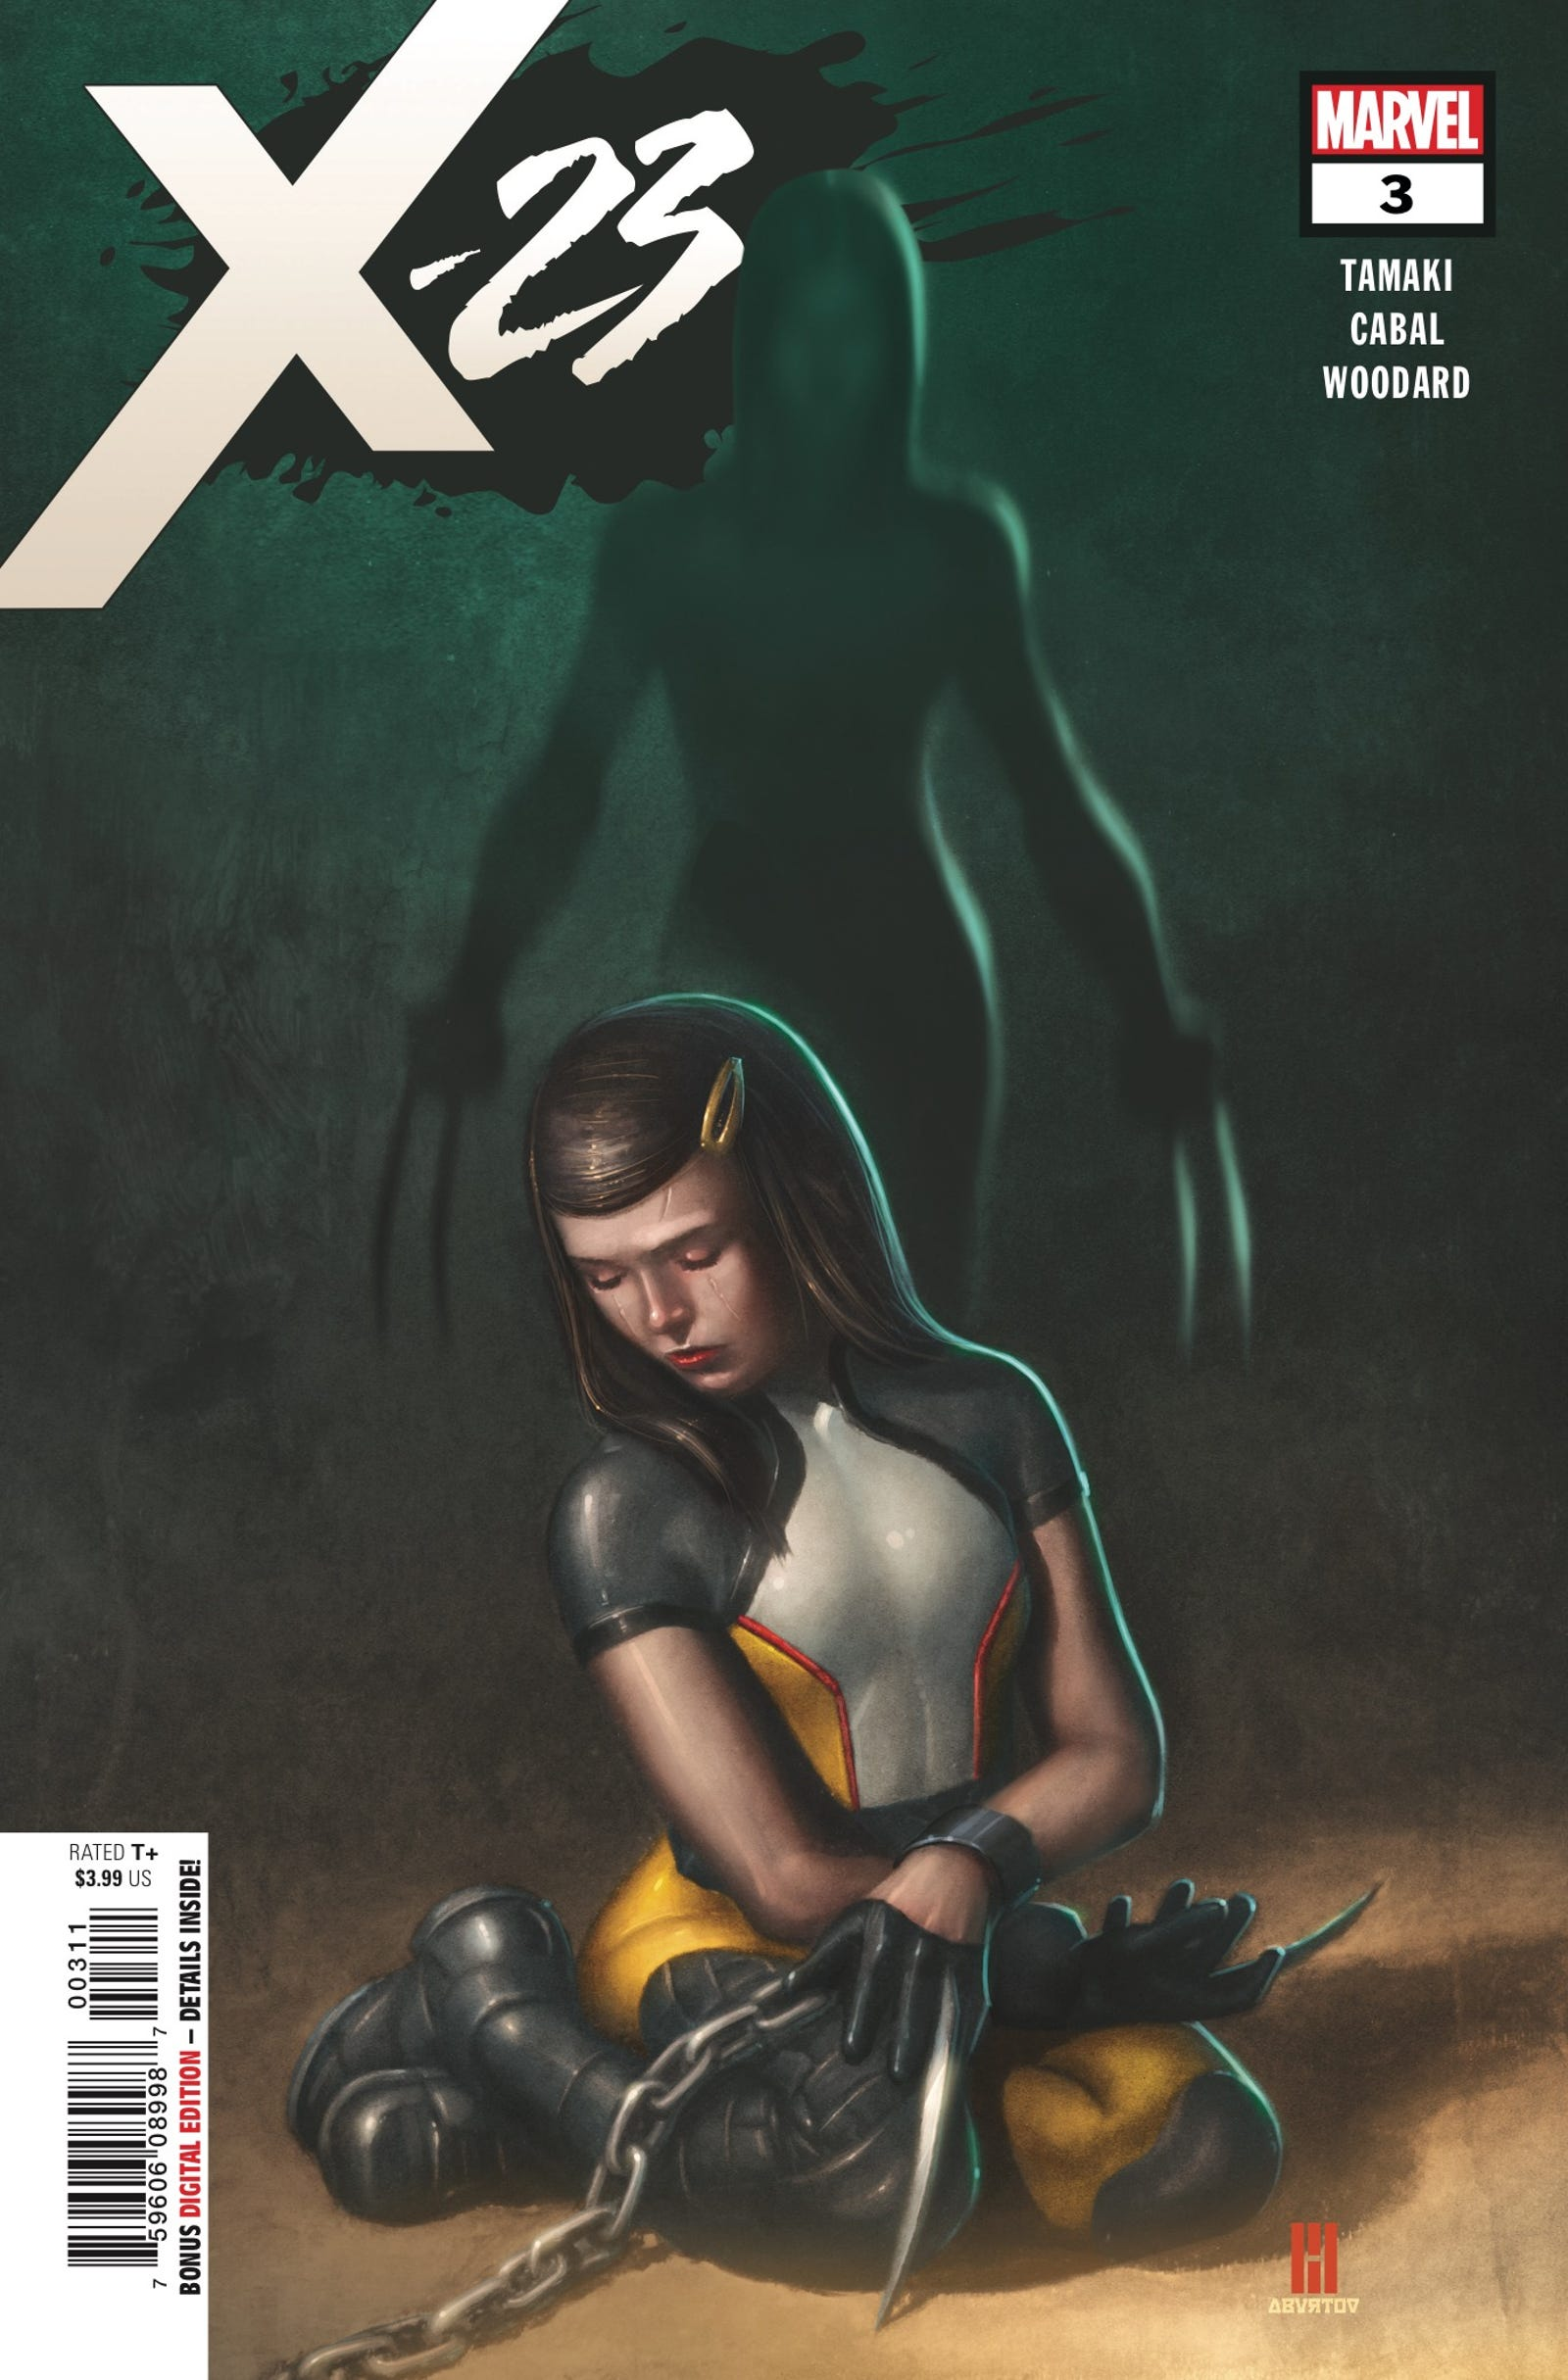 Cover by Mike Choi and Jesus Aburtov